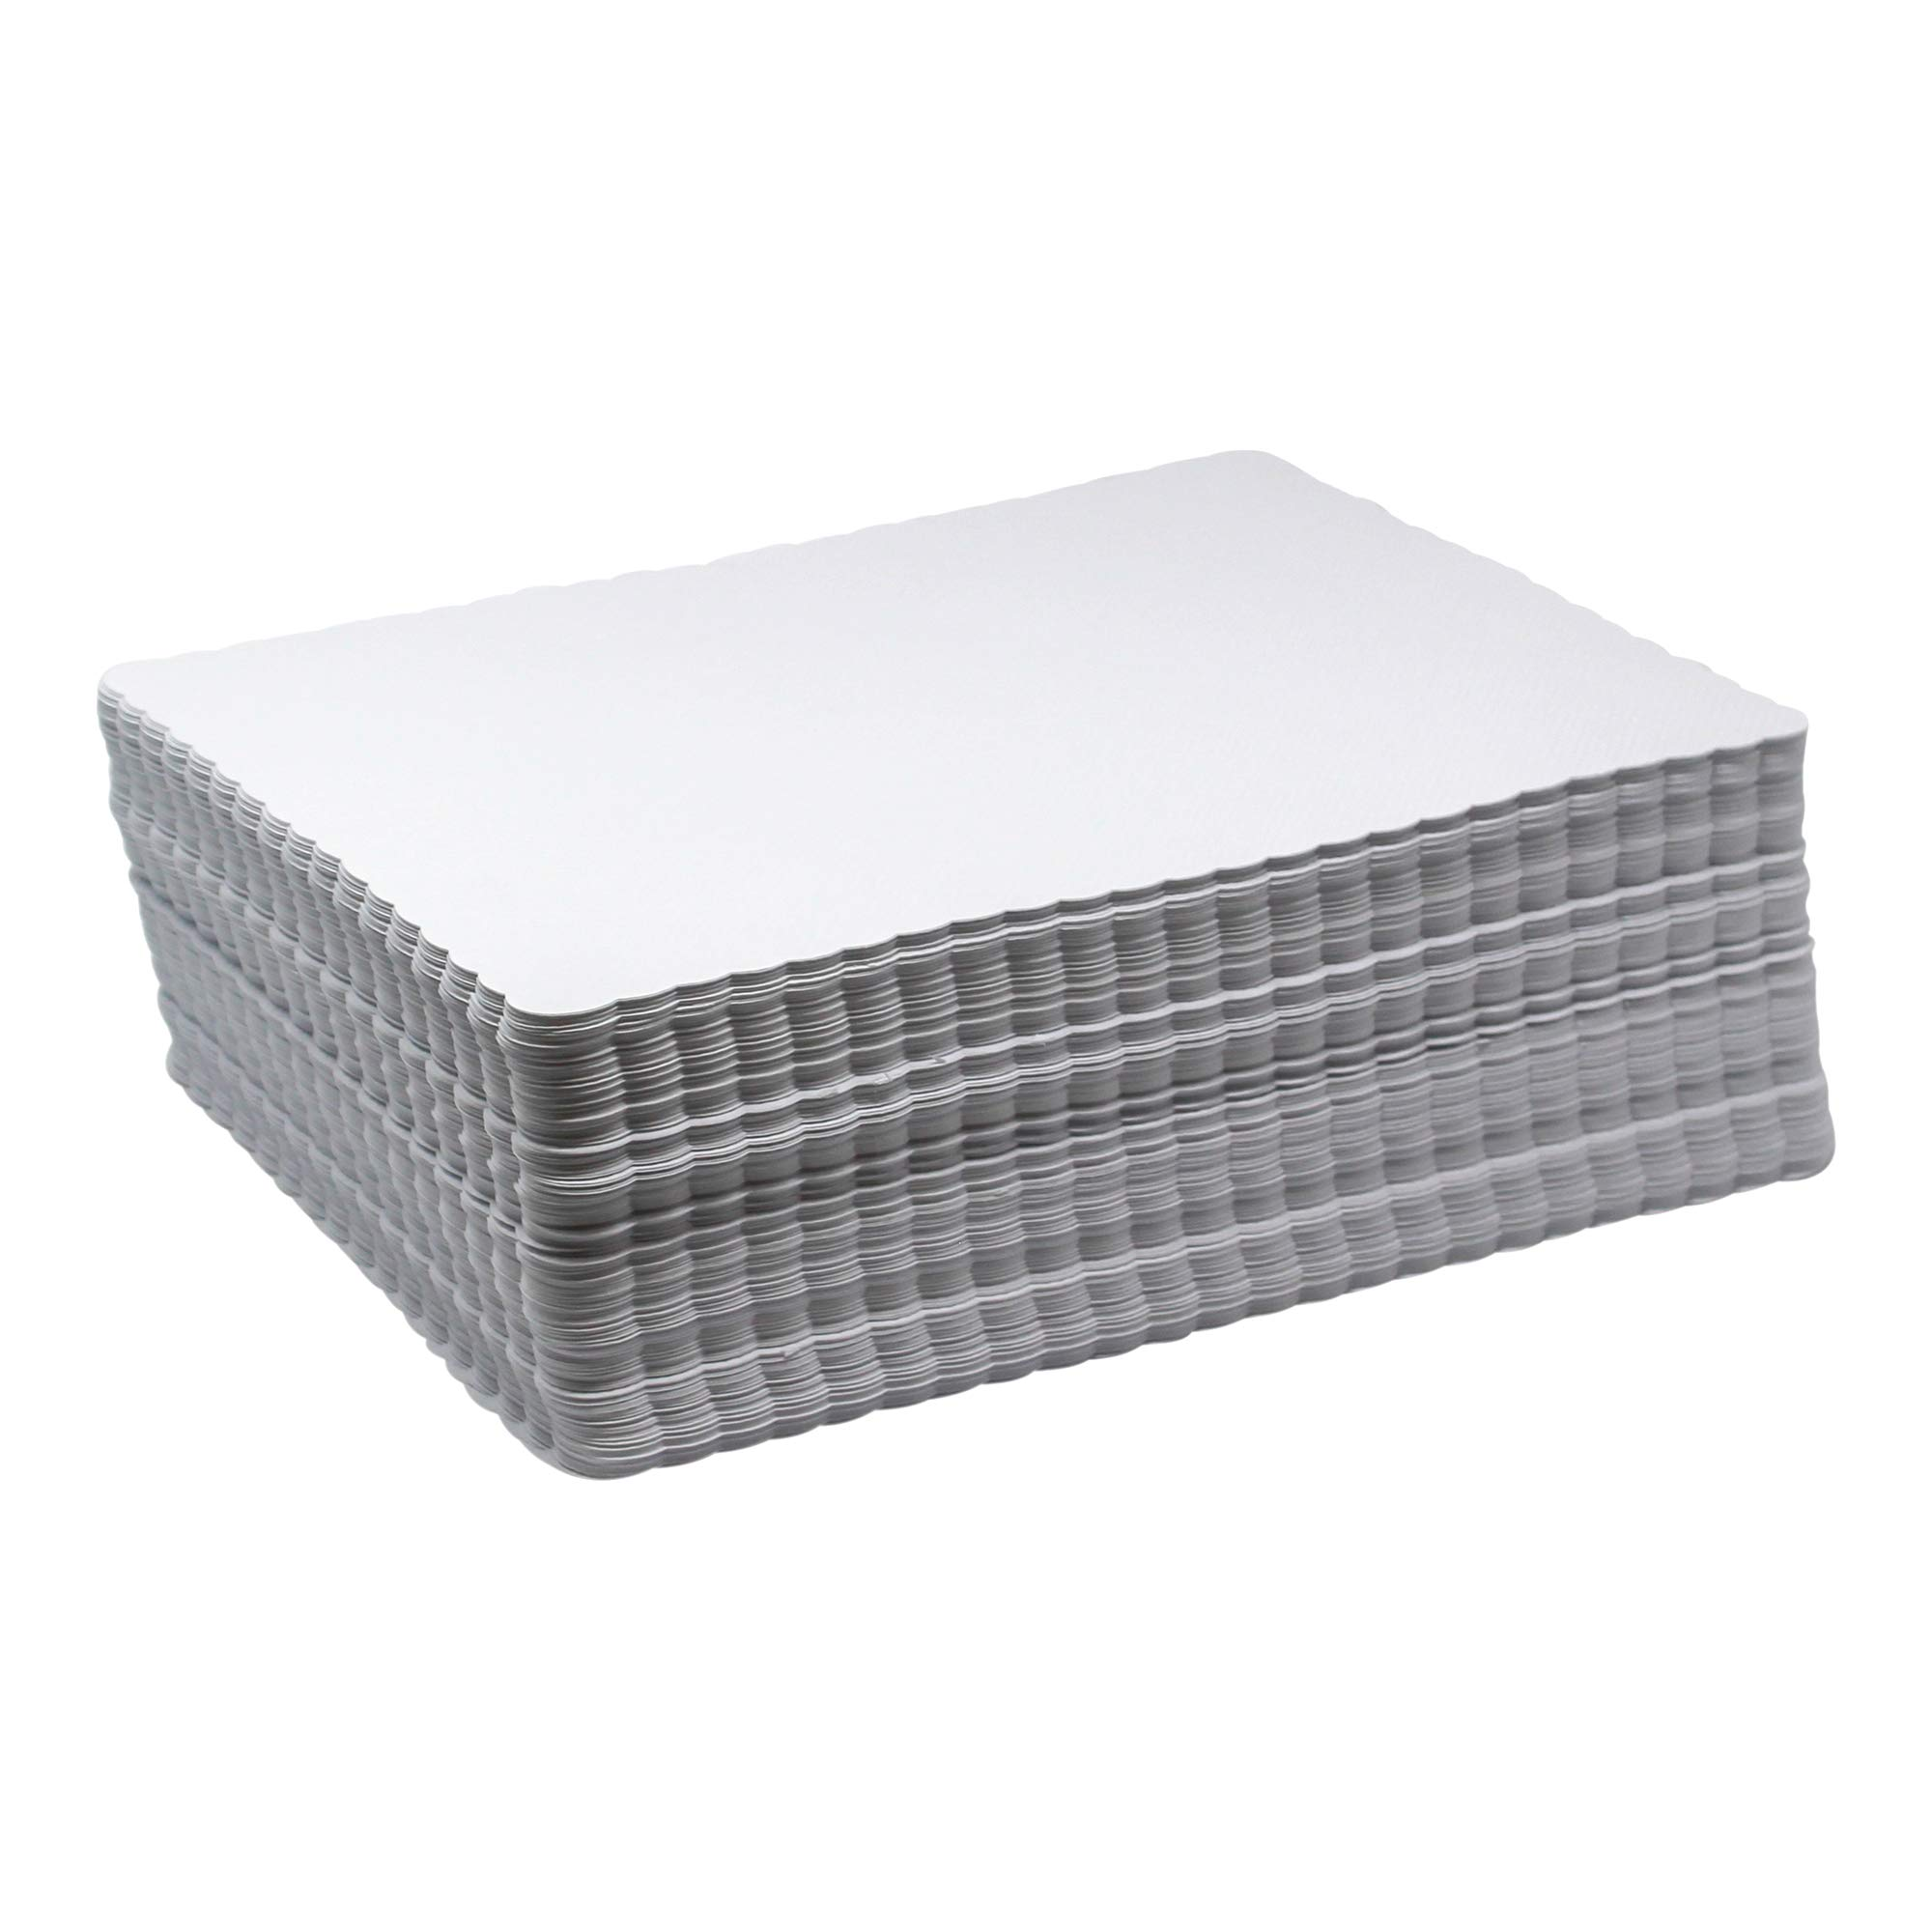 Scalloped Paper Placemats Bulk - Case of 1000 Rectangular Mats - 10'' x 14'' White Placemats - Disposable Commercial Place Mats for Health Care Facilities, Restaurants, Diners, and Catered Events